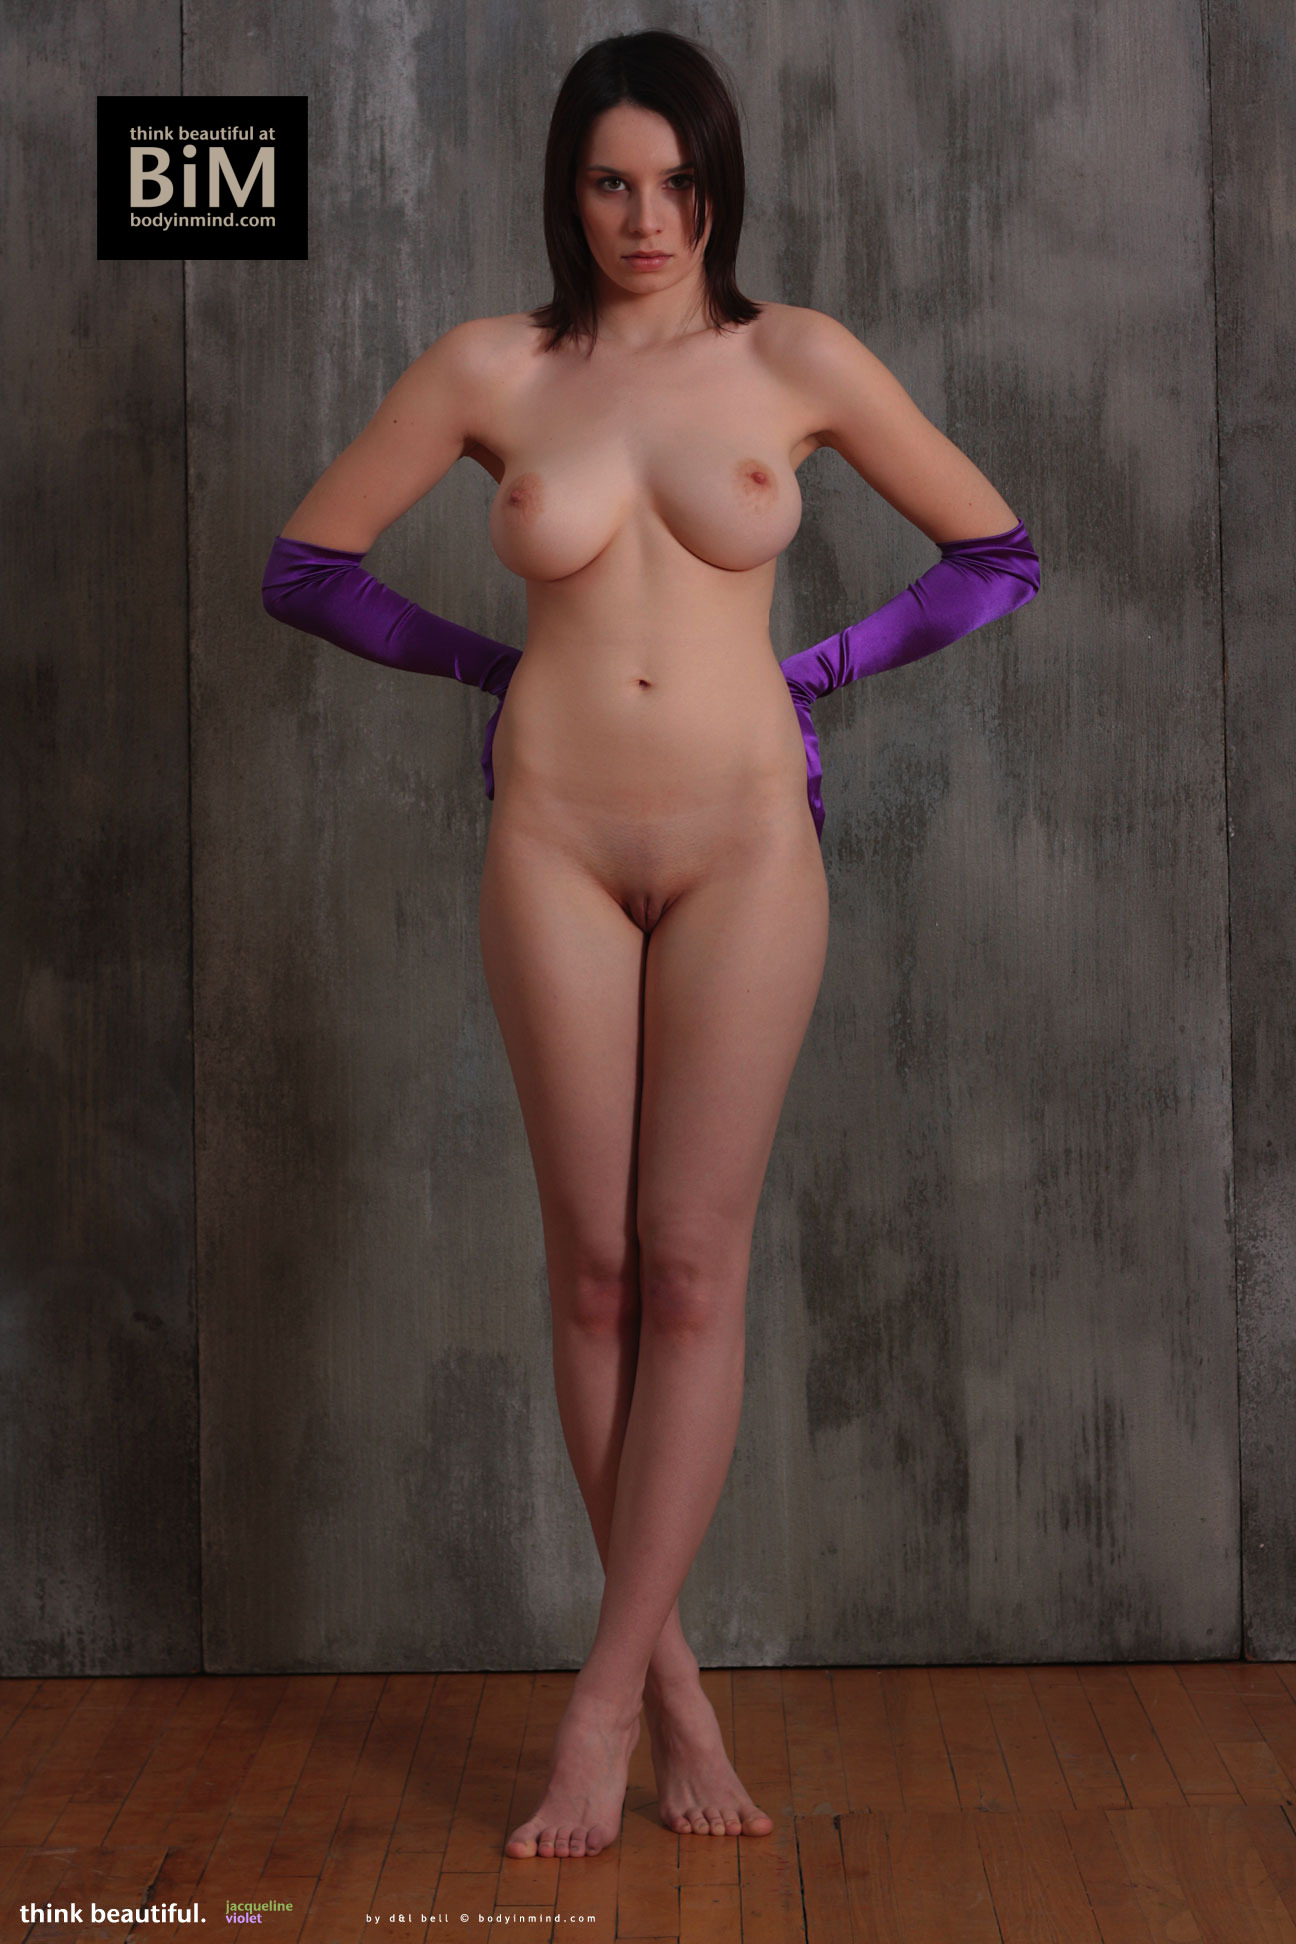 Jacqueline Big Tits with Violet Gloves and Violets for Body in Mind